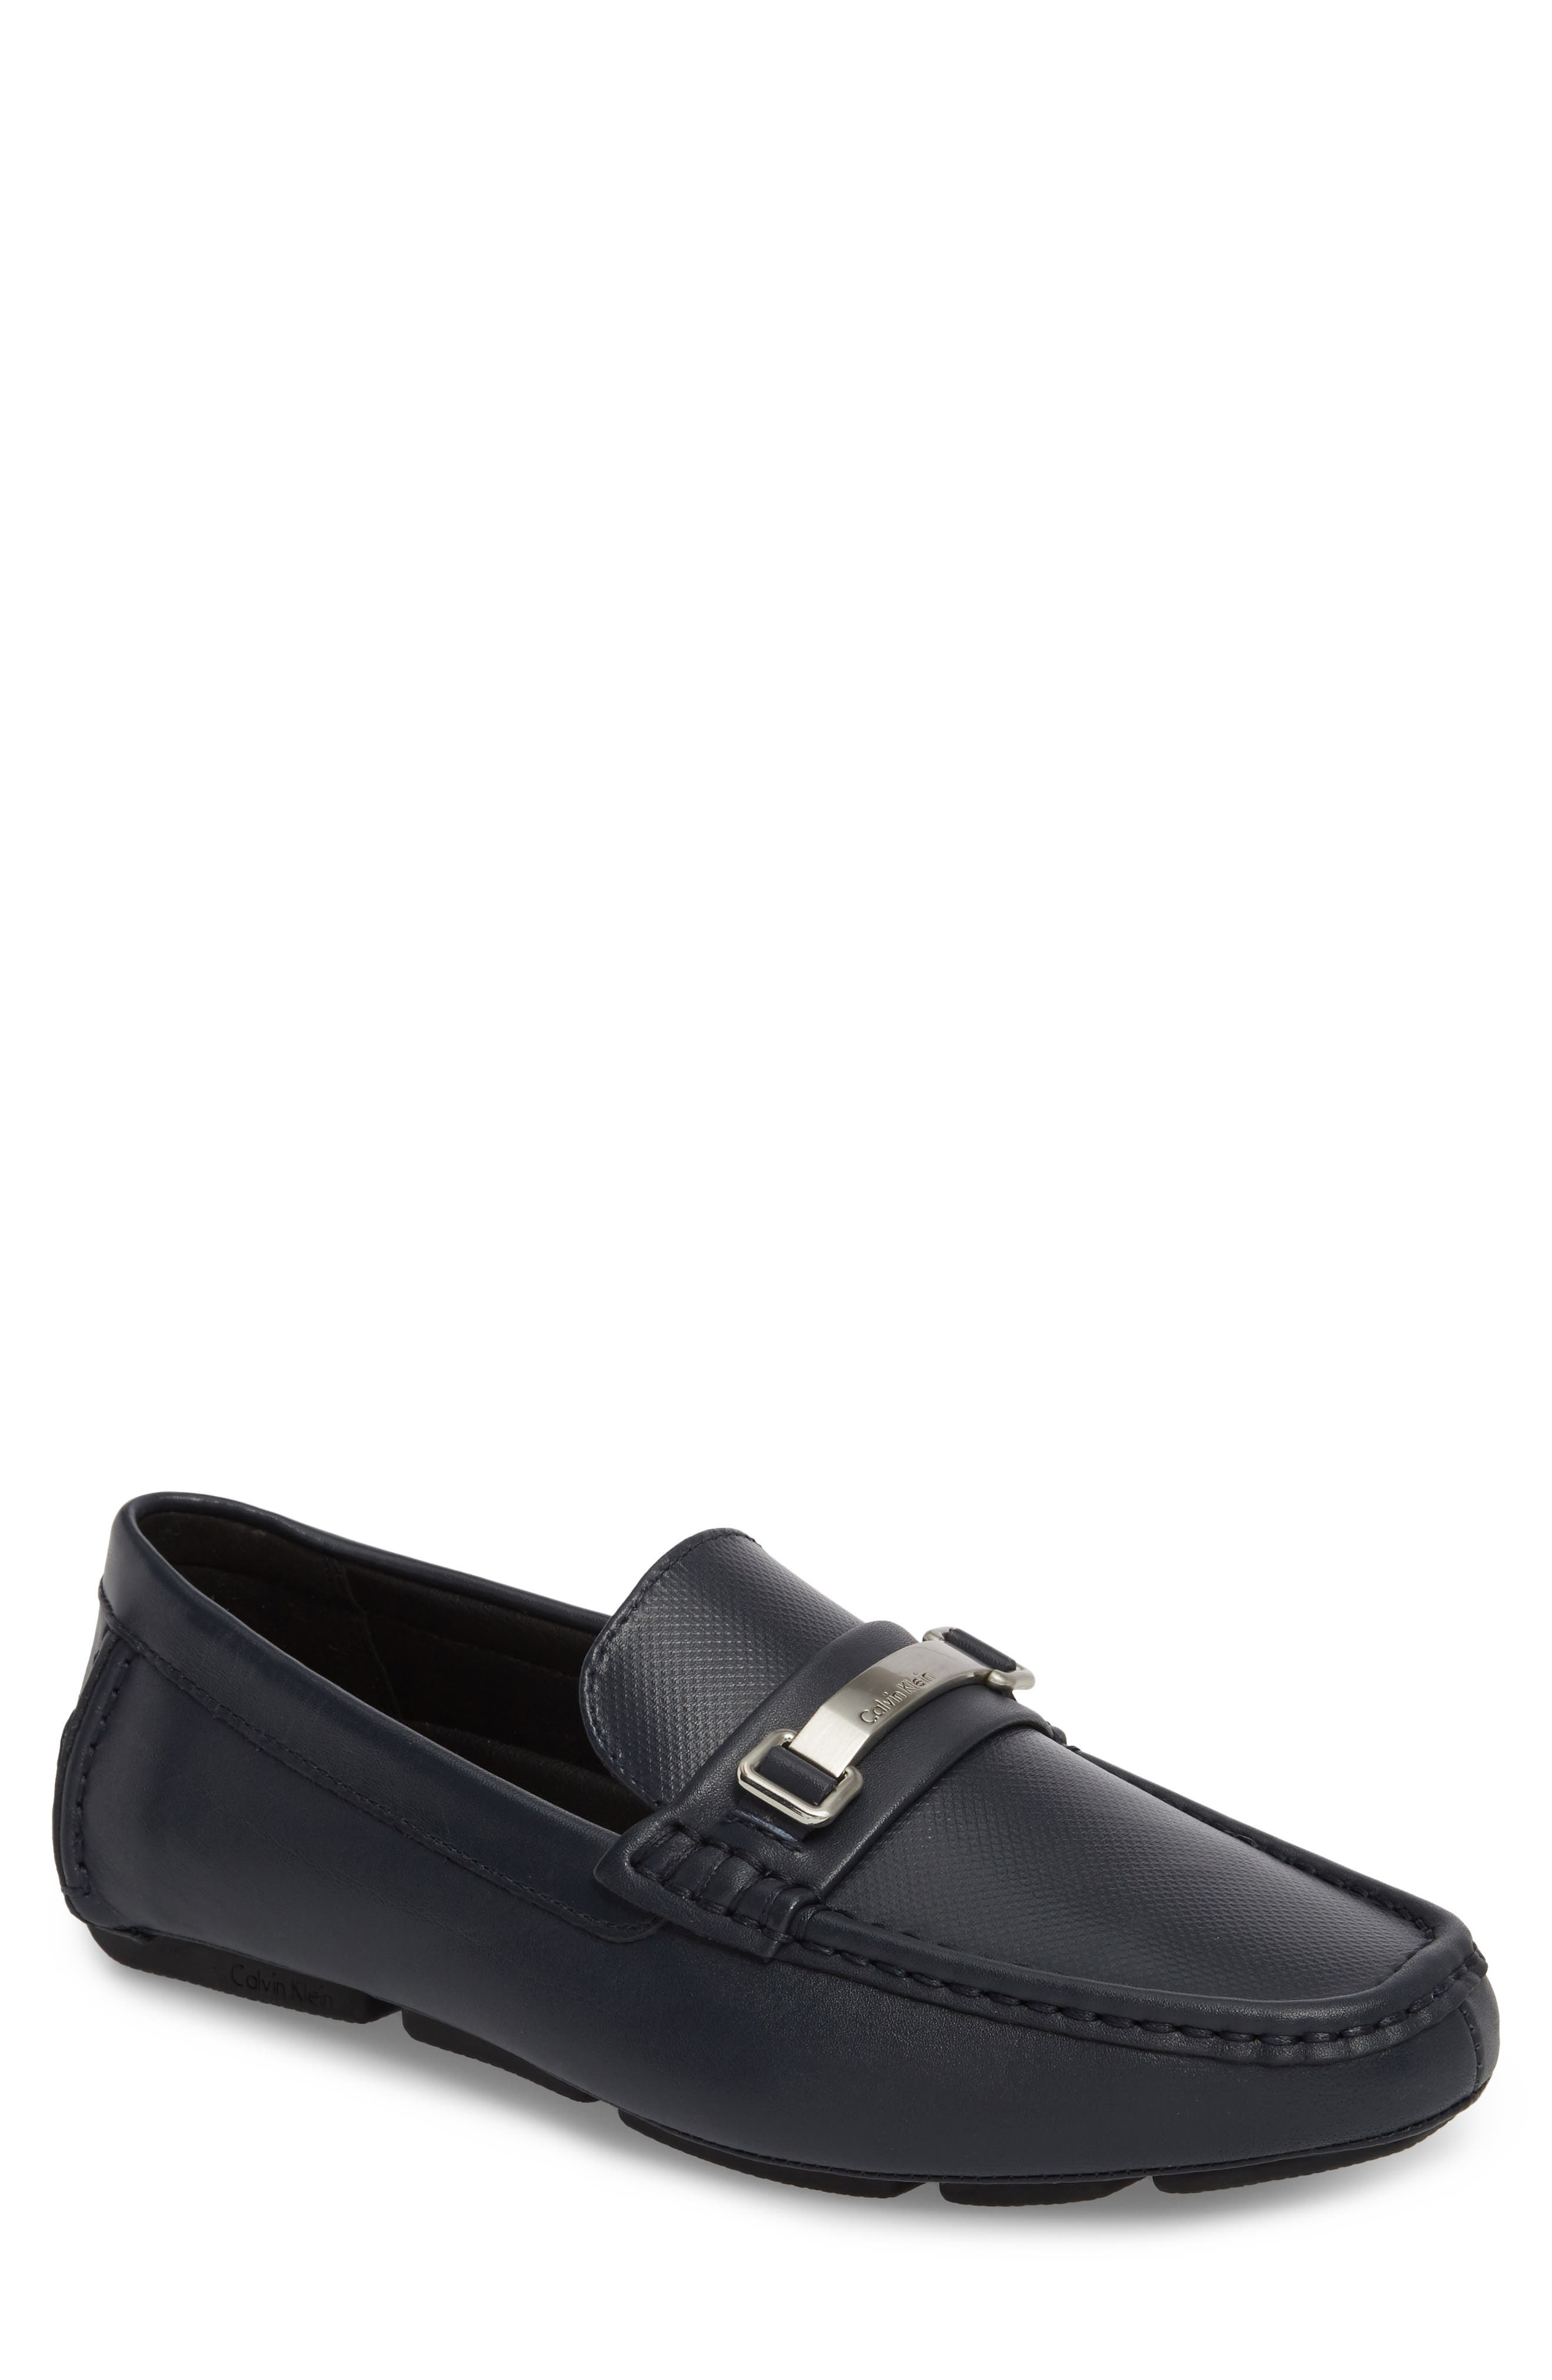 Maddix Textured Driving Moccasin,                         Main,                         color, Dark Navy Leather